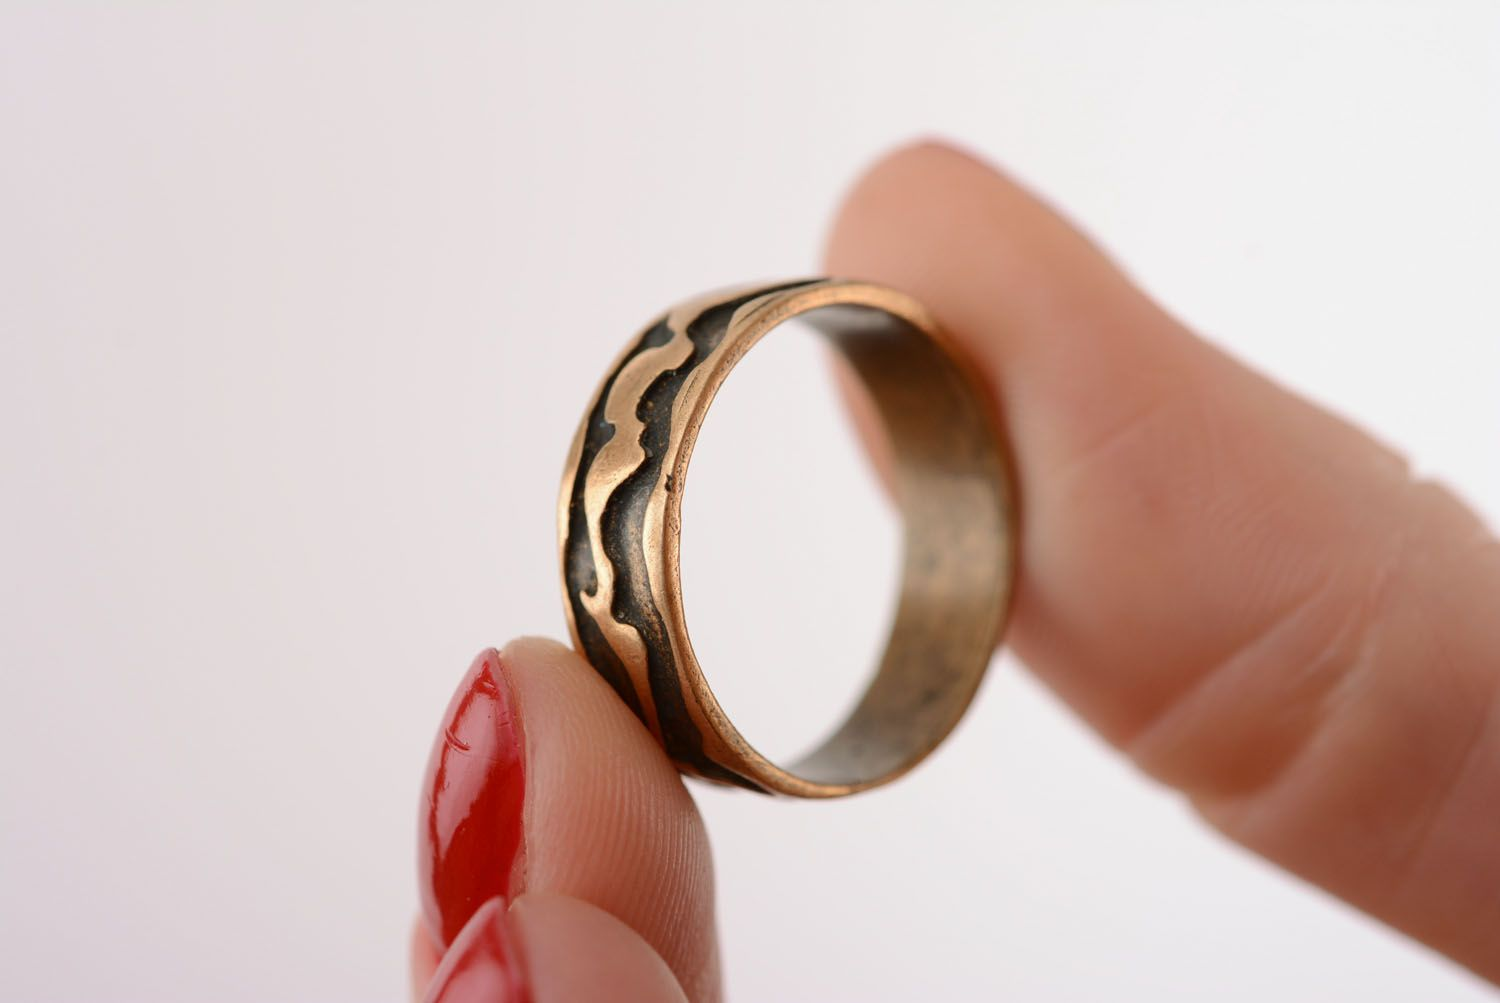 Plain bronze ring photo 4